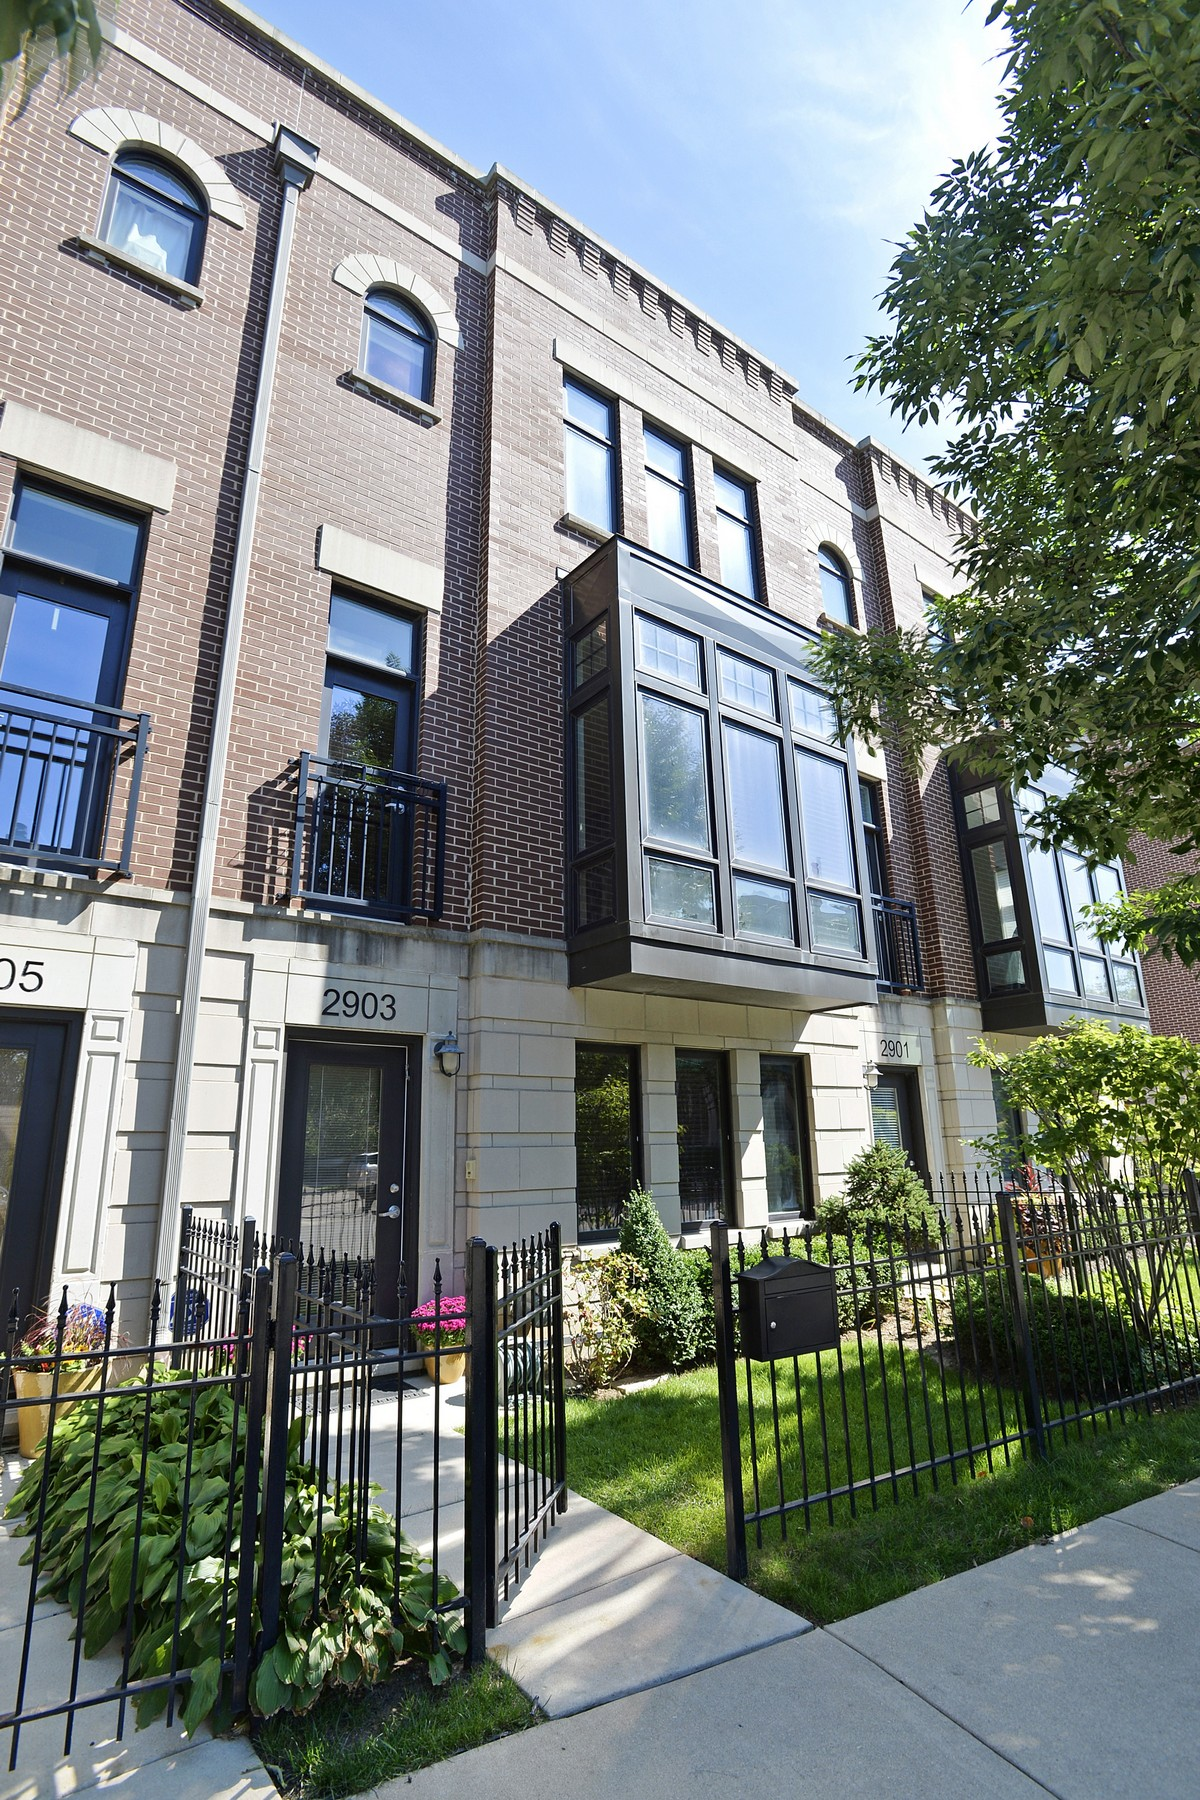 Villetta a schiera per Vendita alle ore Gorgeous Brick Townhome 2903 N Hermitage Avenue Lakeview, Chicago, Illinois 60657 Stati Uniti